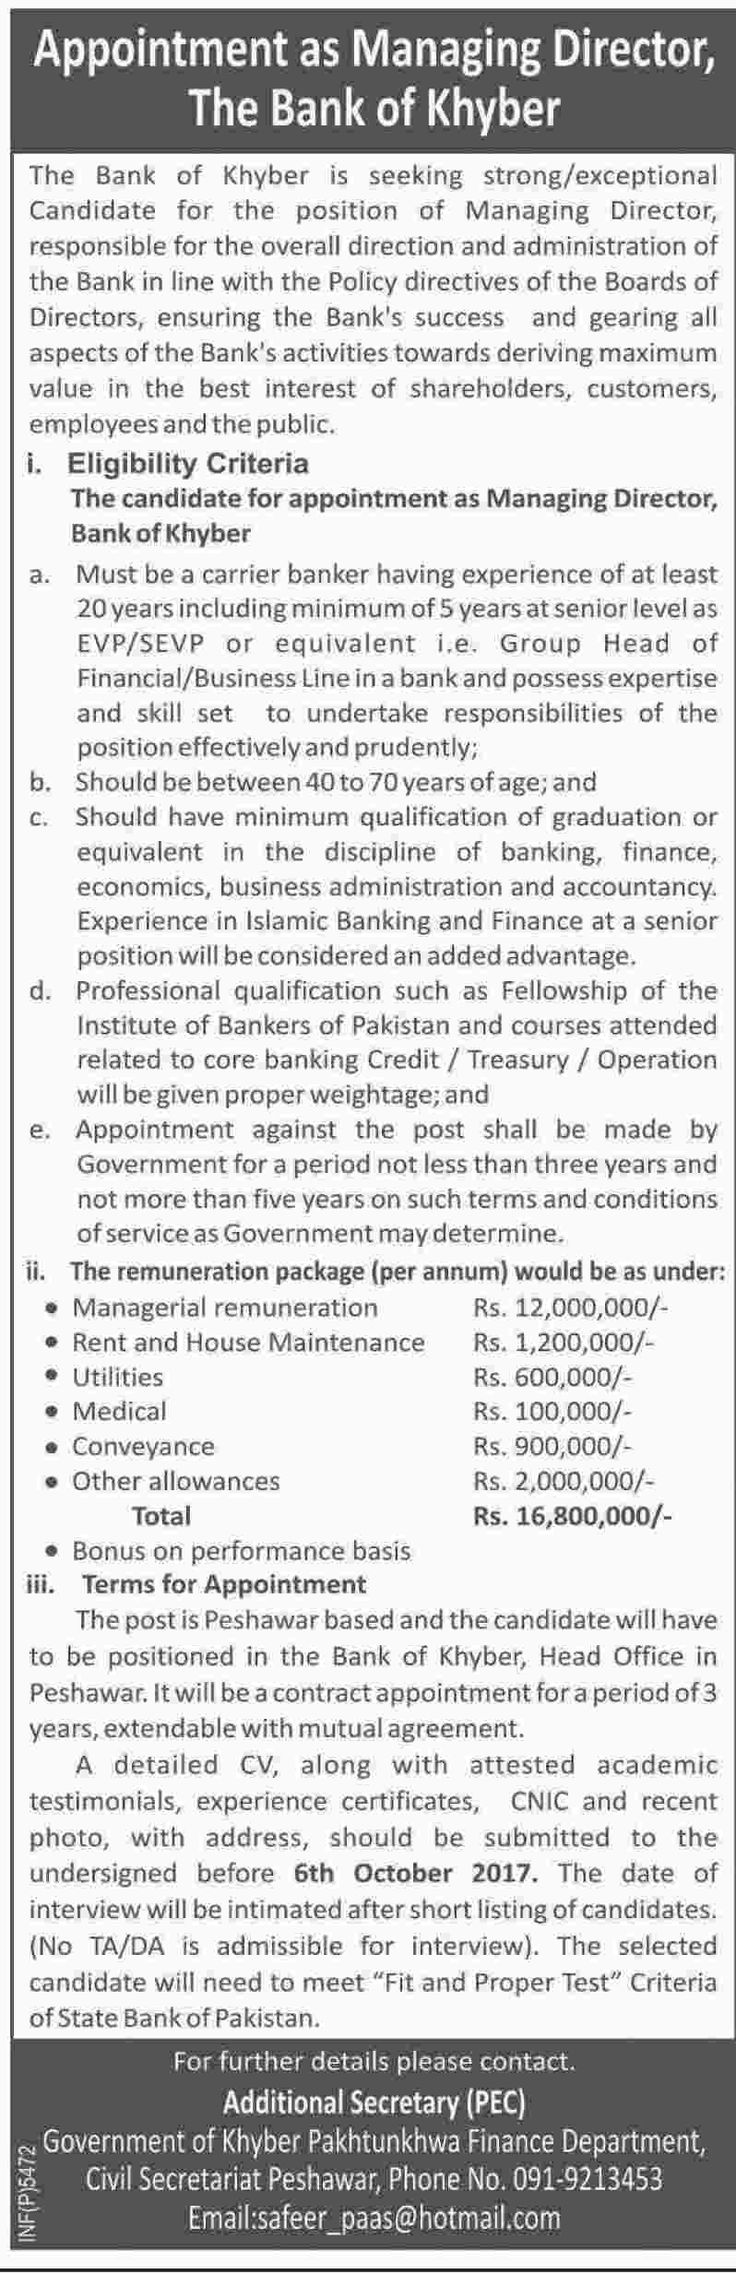 The Bank of Khyber Job   	Managing Director  Last Date to Apply: Oct 6, 2017 Newspaper: Daily Dawn - Sep 20, 2017     #Managing Director